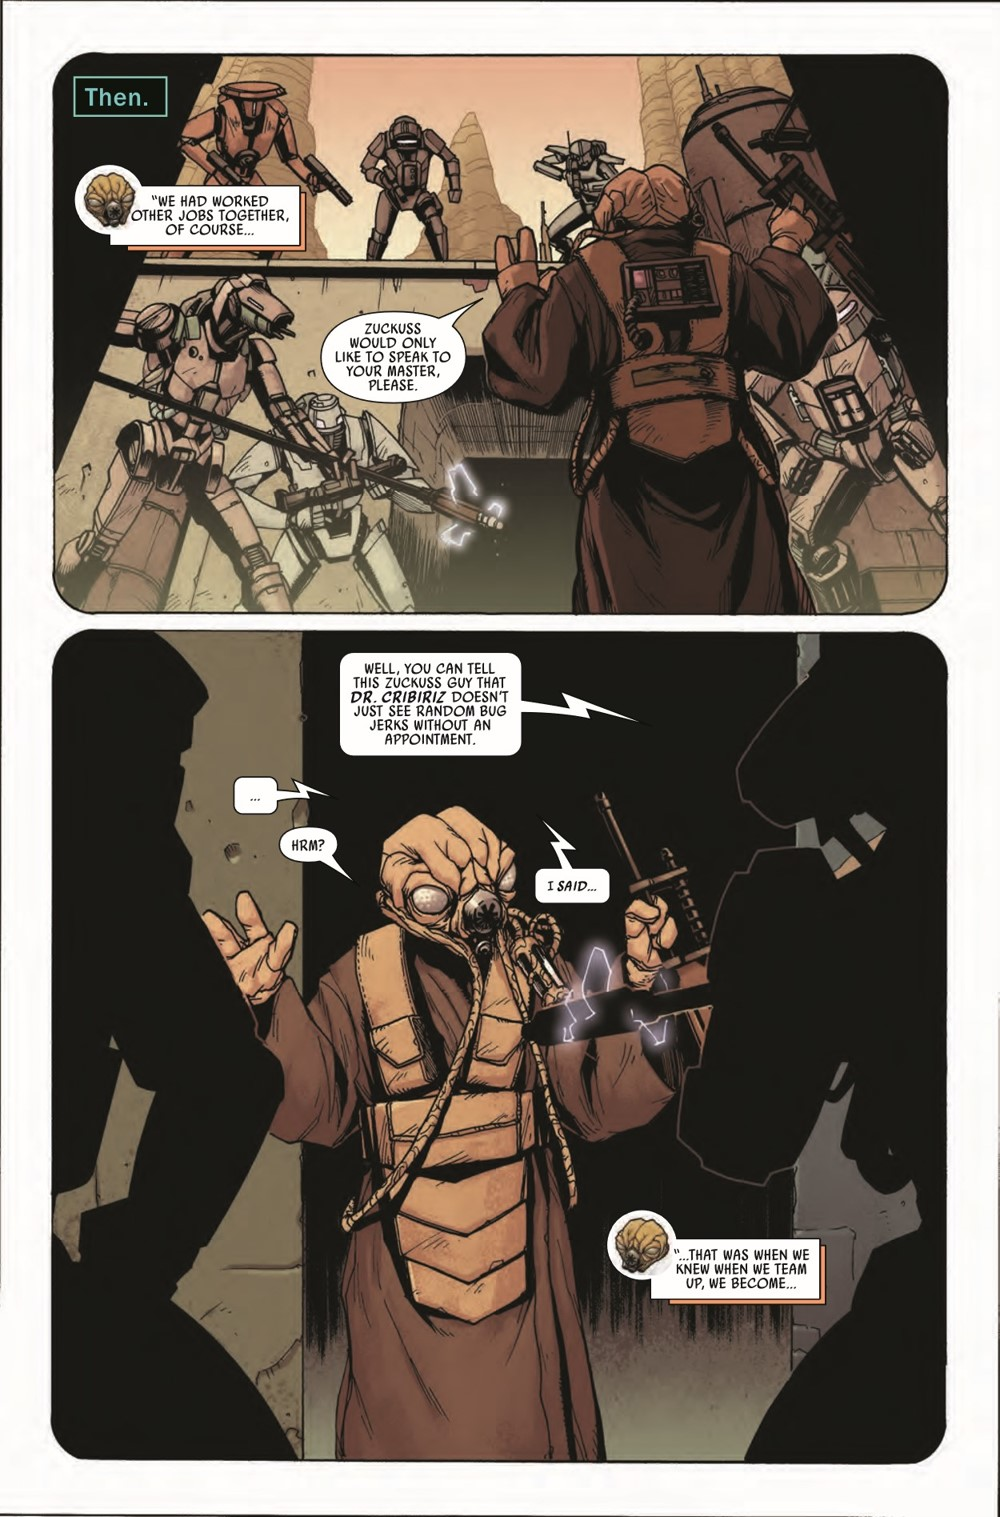 STWWAROTBH4LOMZUCK2021001_Preview-3 ComicList Previews: STAR WARS WAR OF THE BOUNTY HUNTERS 4-LOM AND ZUCKUSS #1